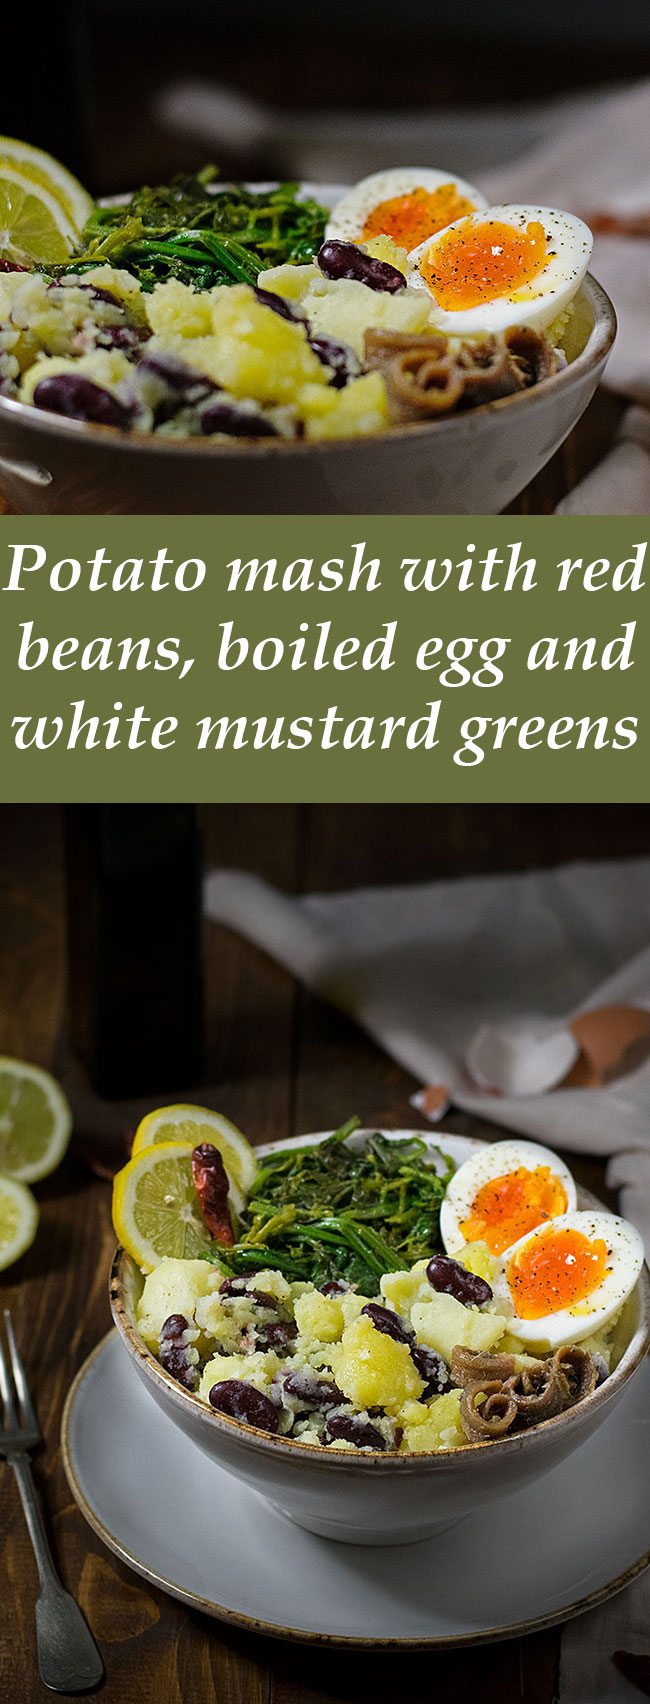 potato-mash-with-red-beans-egg-and-mustard-greens-5